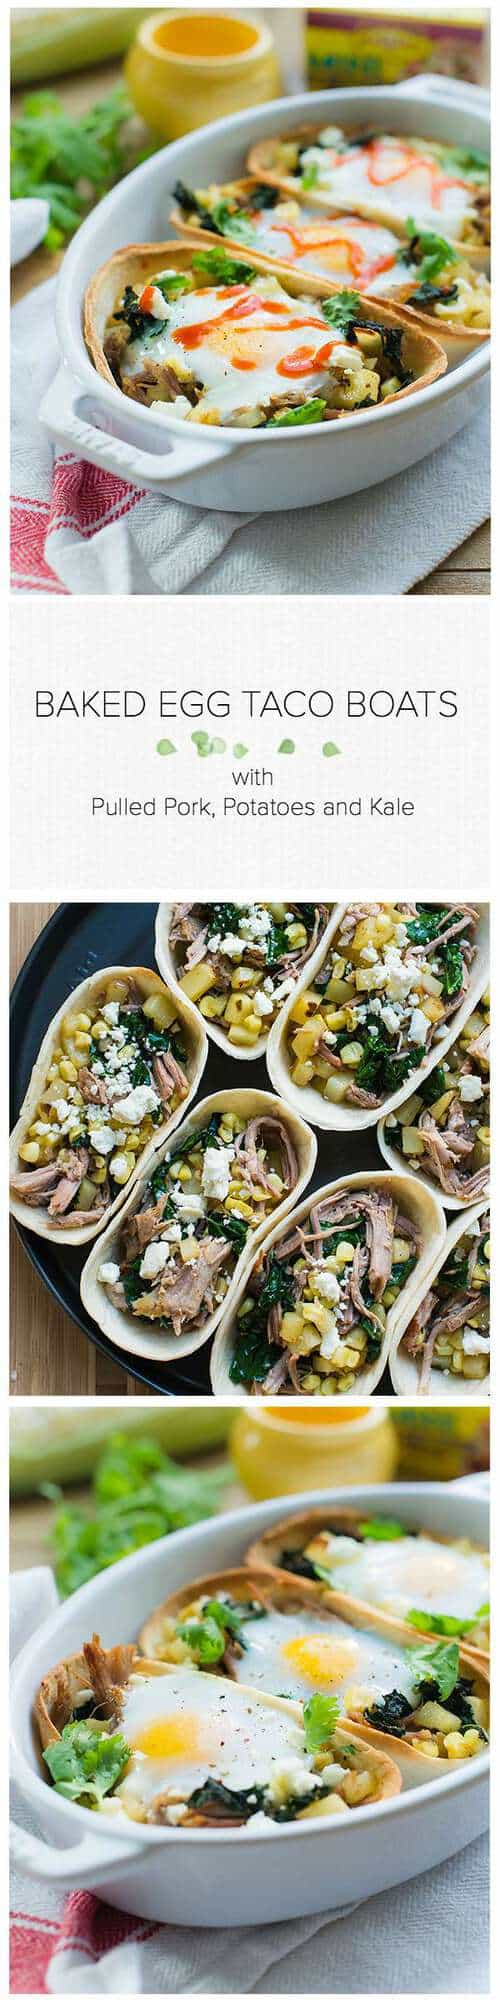 Baked Egg Taco Boats with Pulled Pork, Potatoes and Kale  www.kitchenconfidante.com | Taco night just got more fun! These wholesome taco boats are a weeknight meal the whole family will love. #oldelpaso